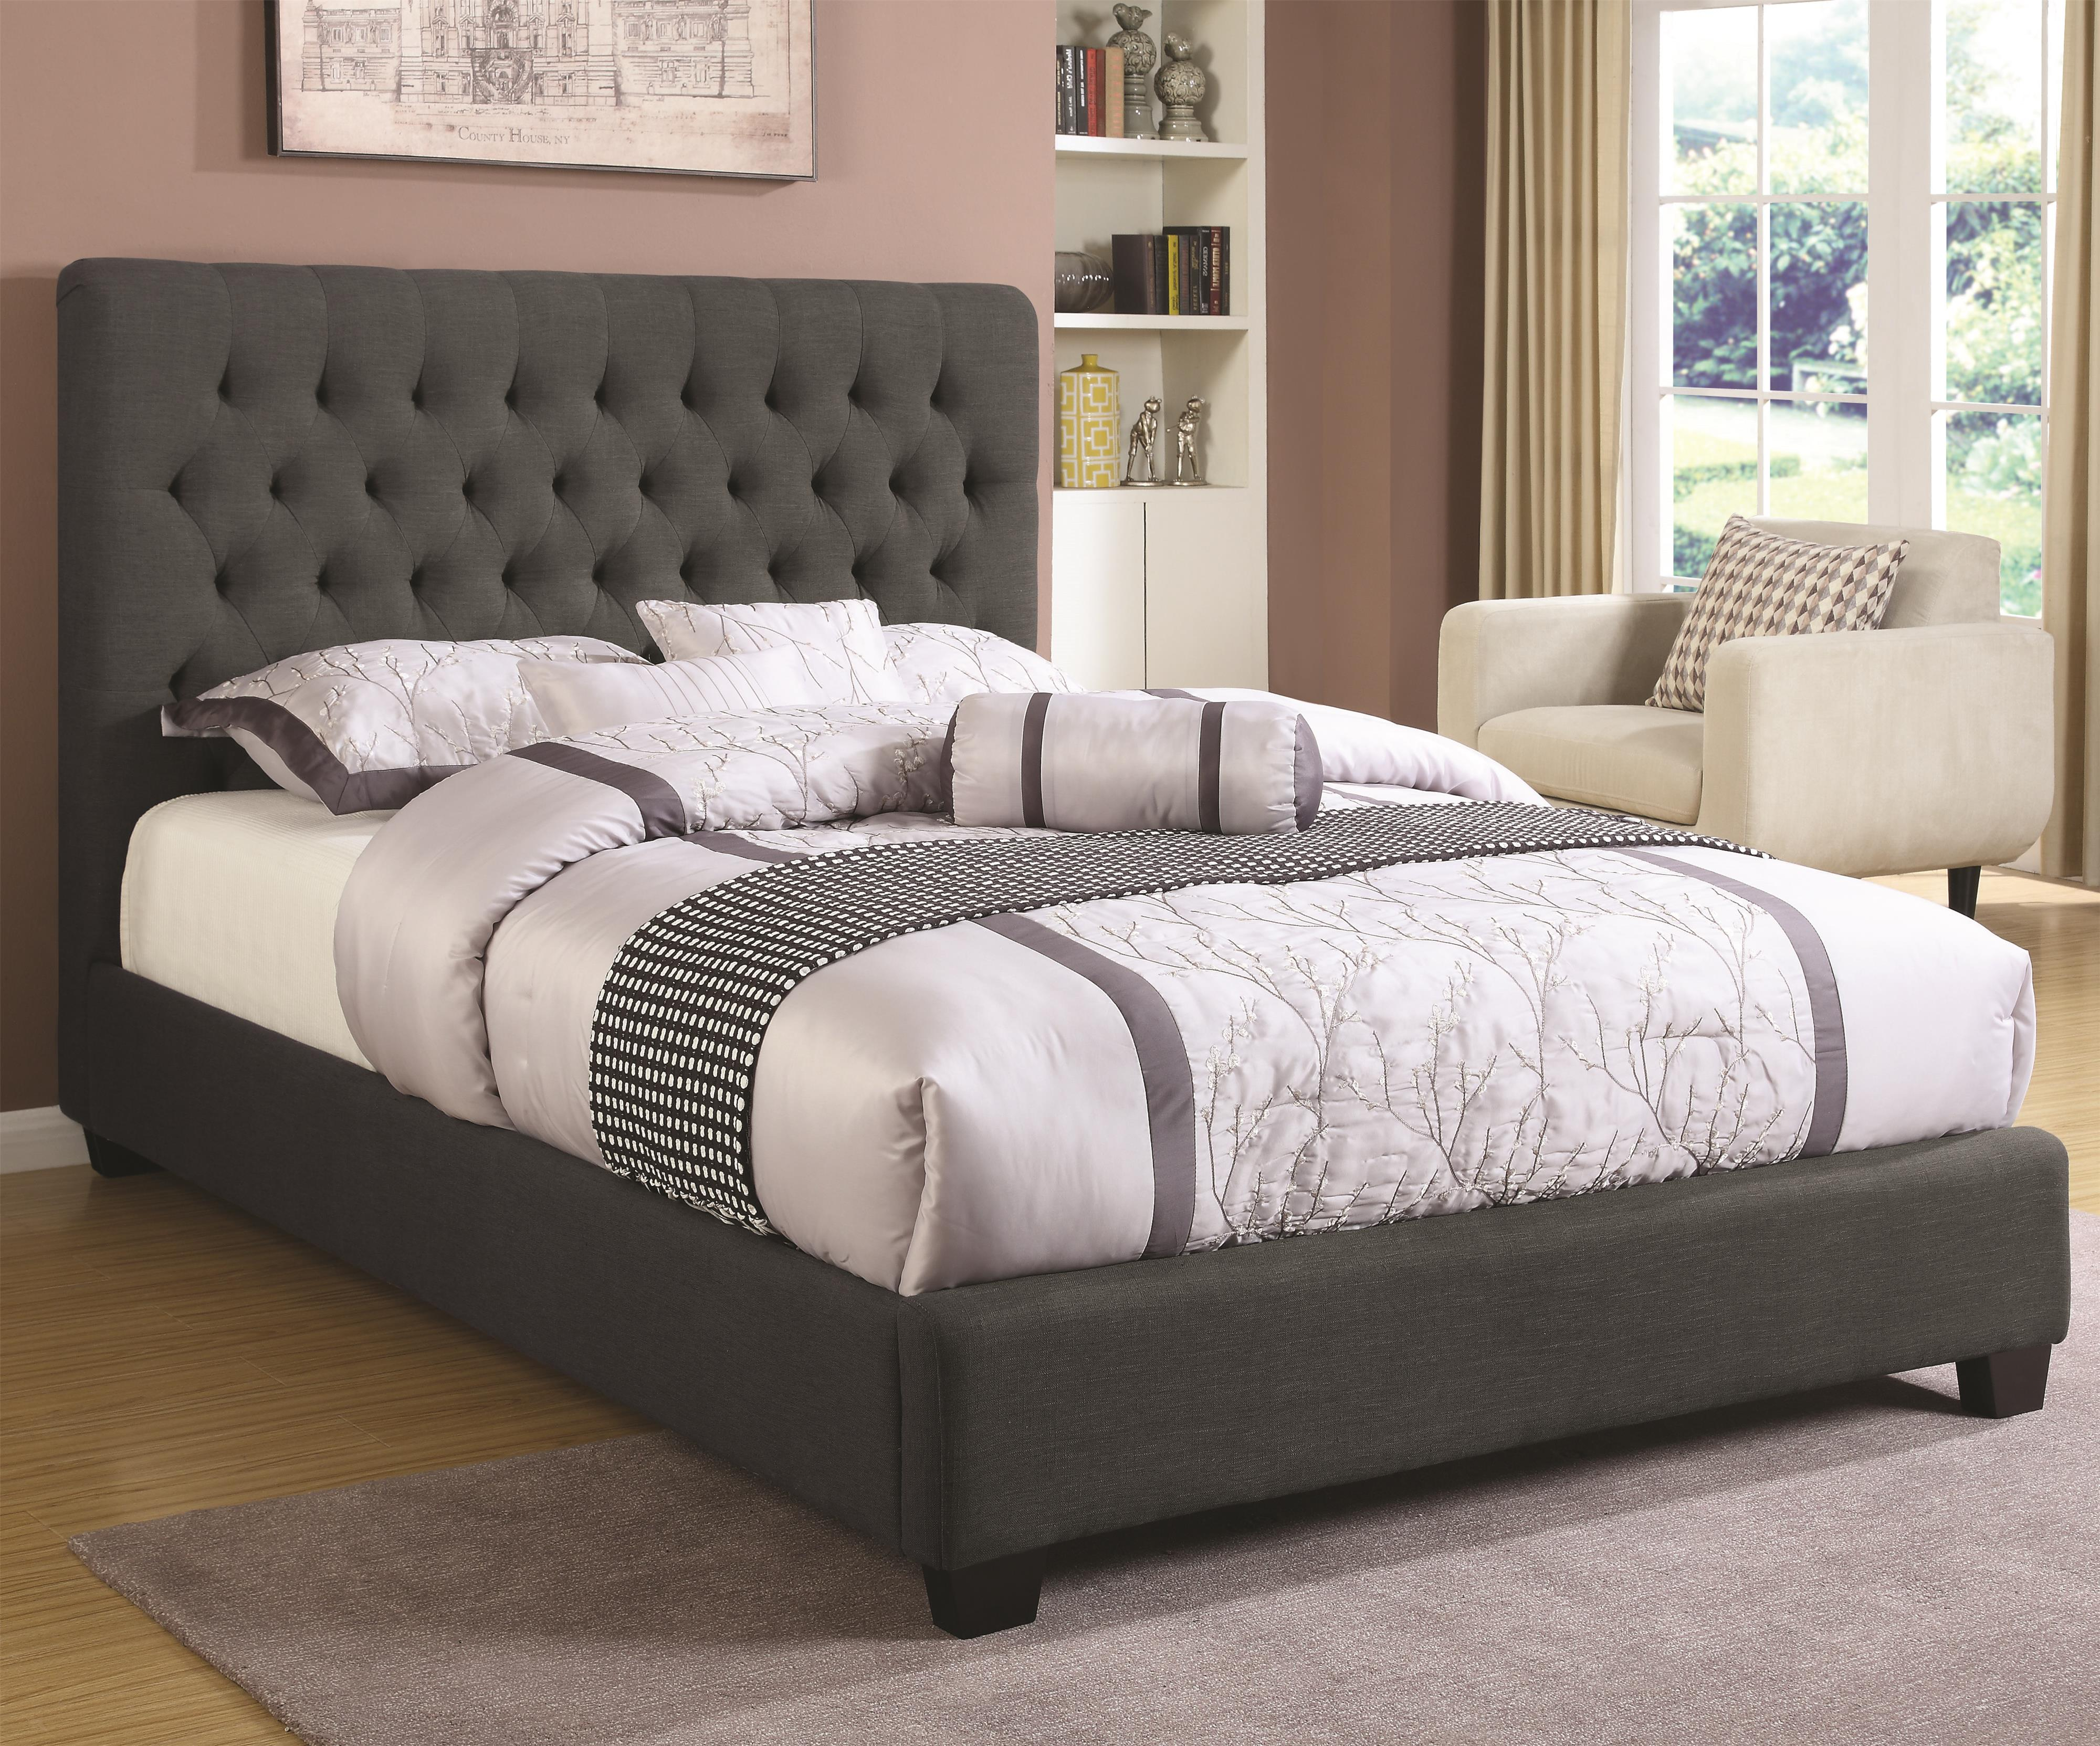 Queen Chloe Upholstered Bed